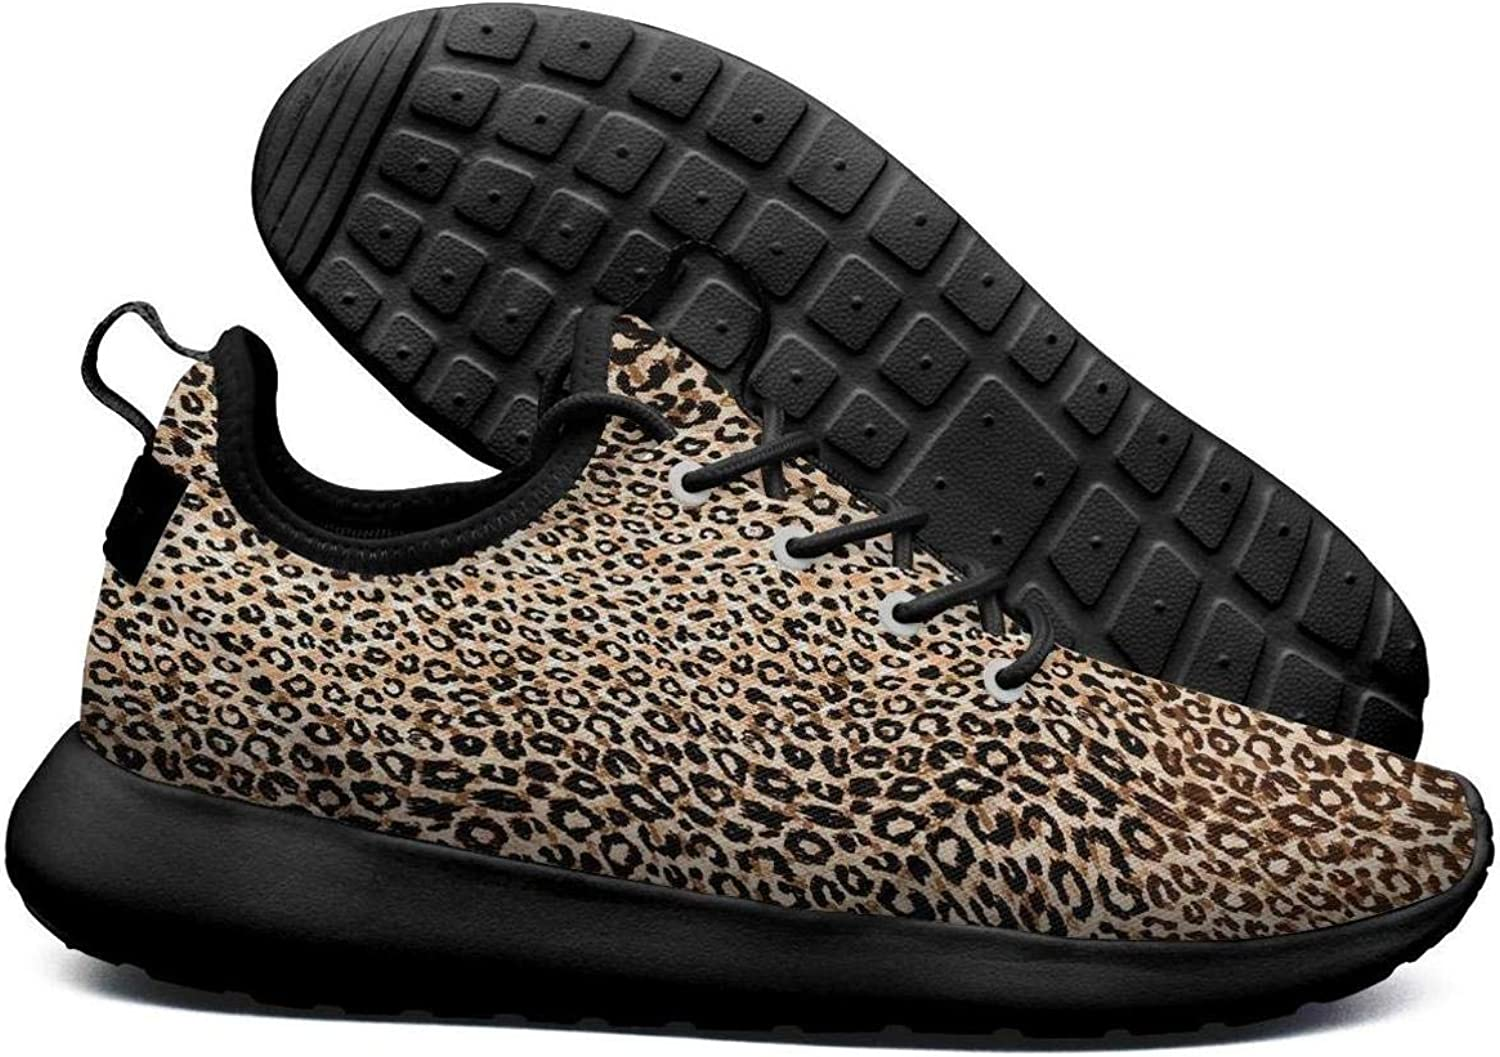 Leopard print zebra texture Plimsolls for Women Print Breathable and Lightweight Walking shoes